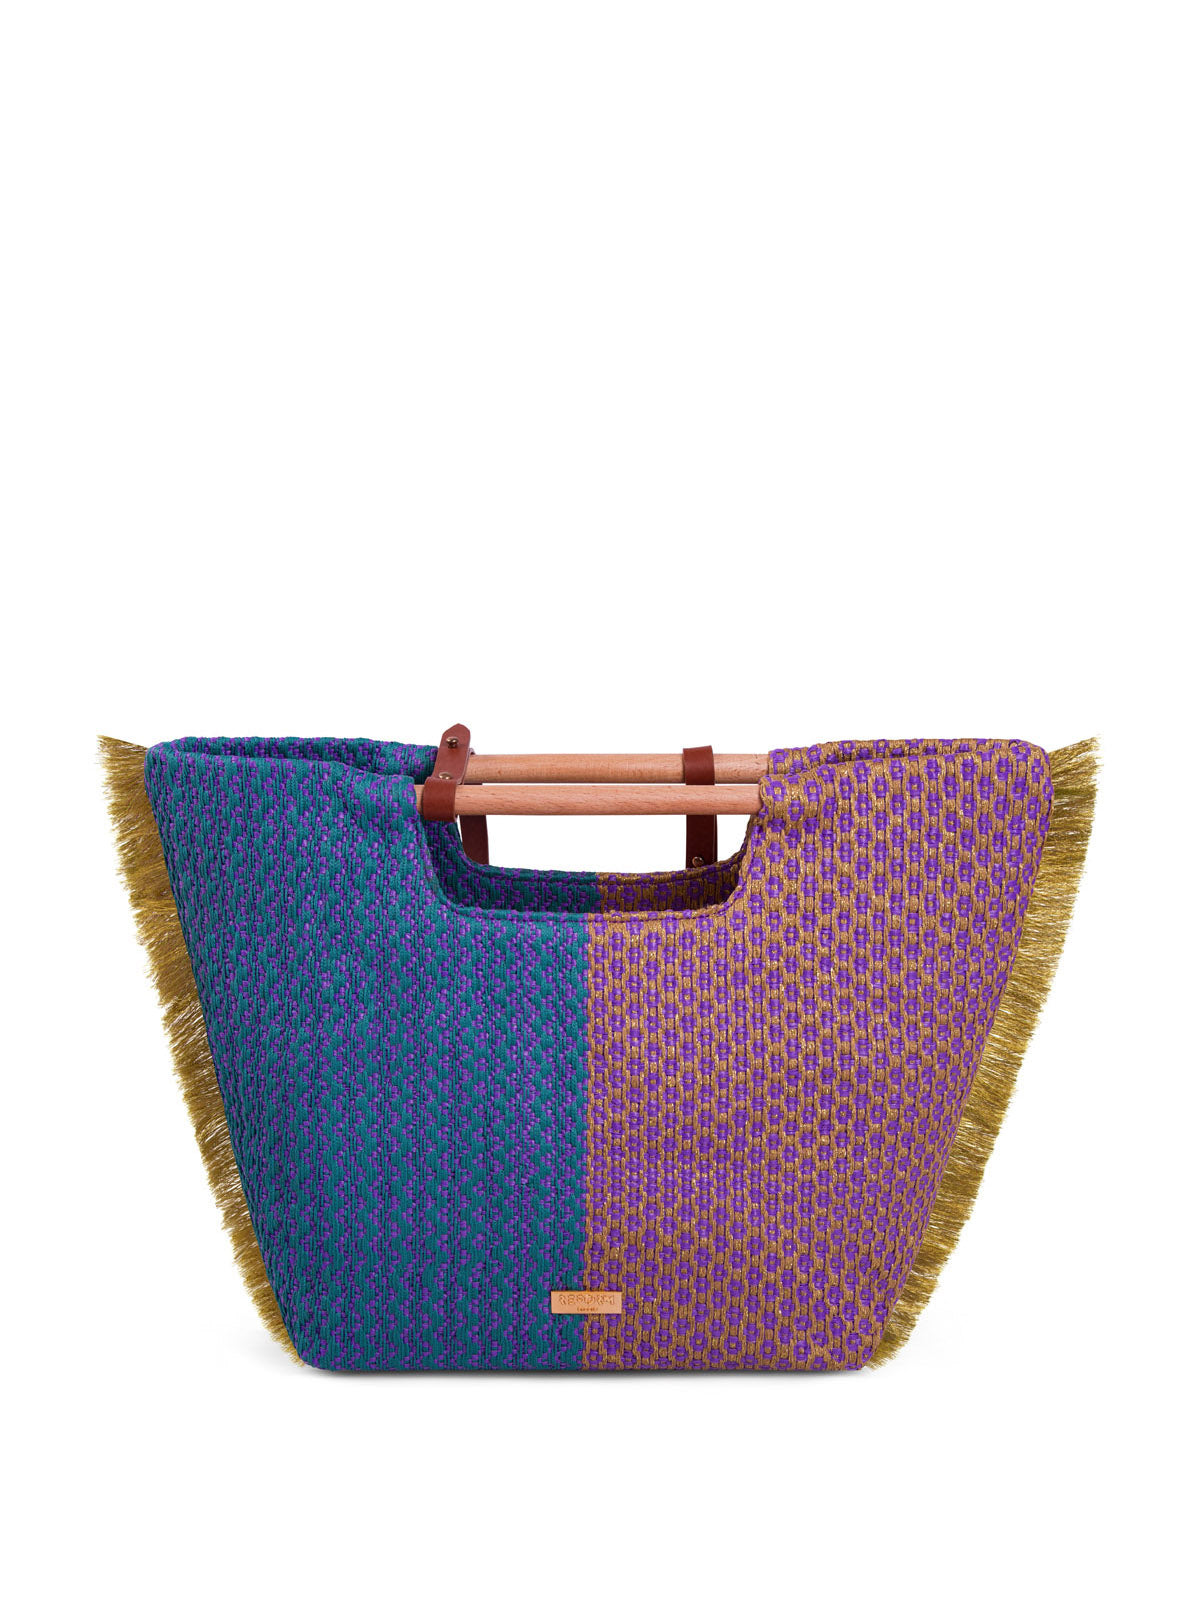 Two-tone Nomadic Beach Bag